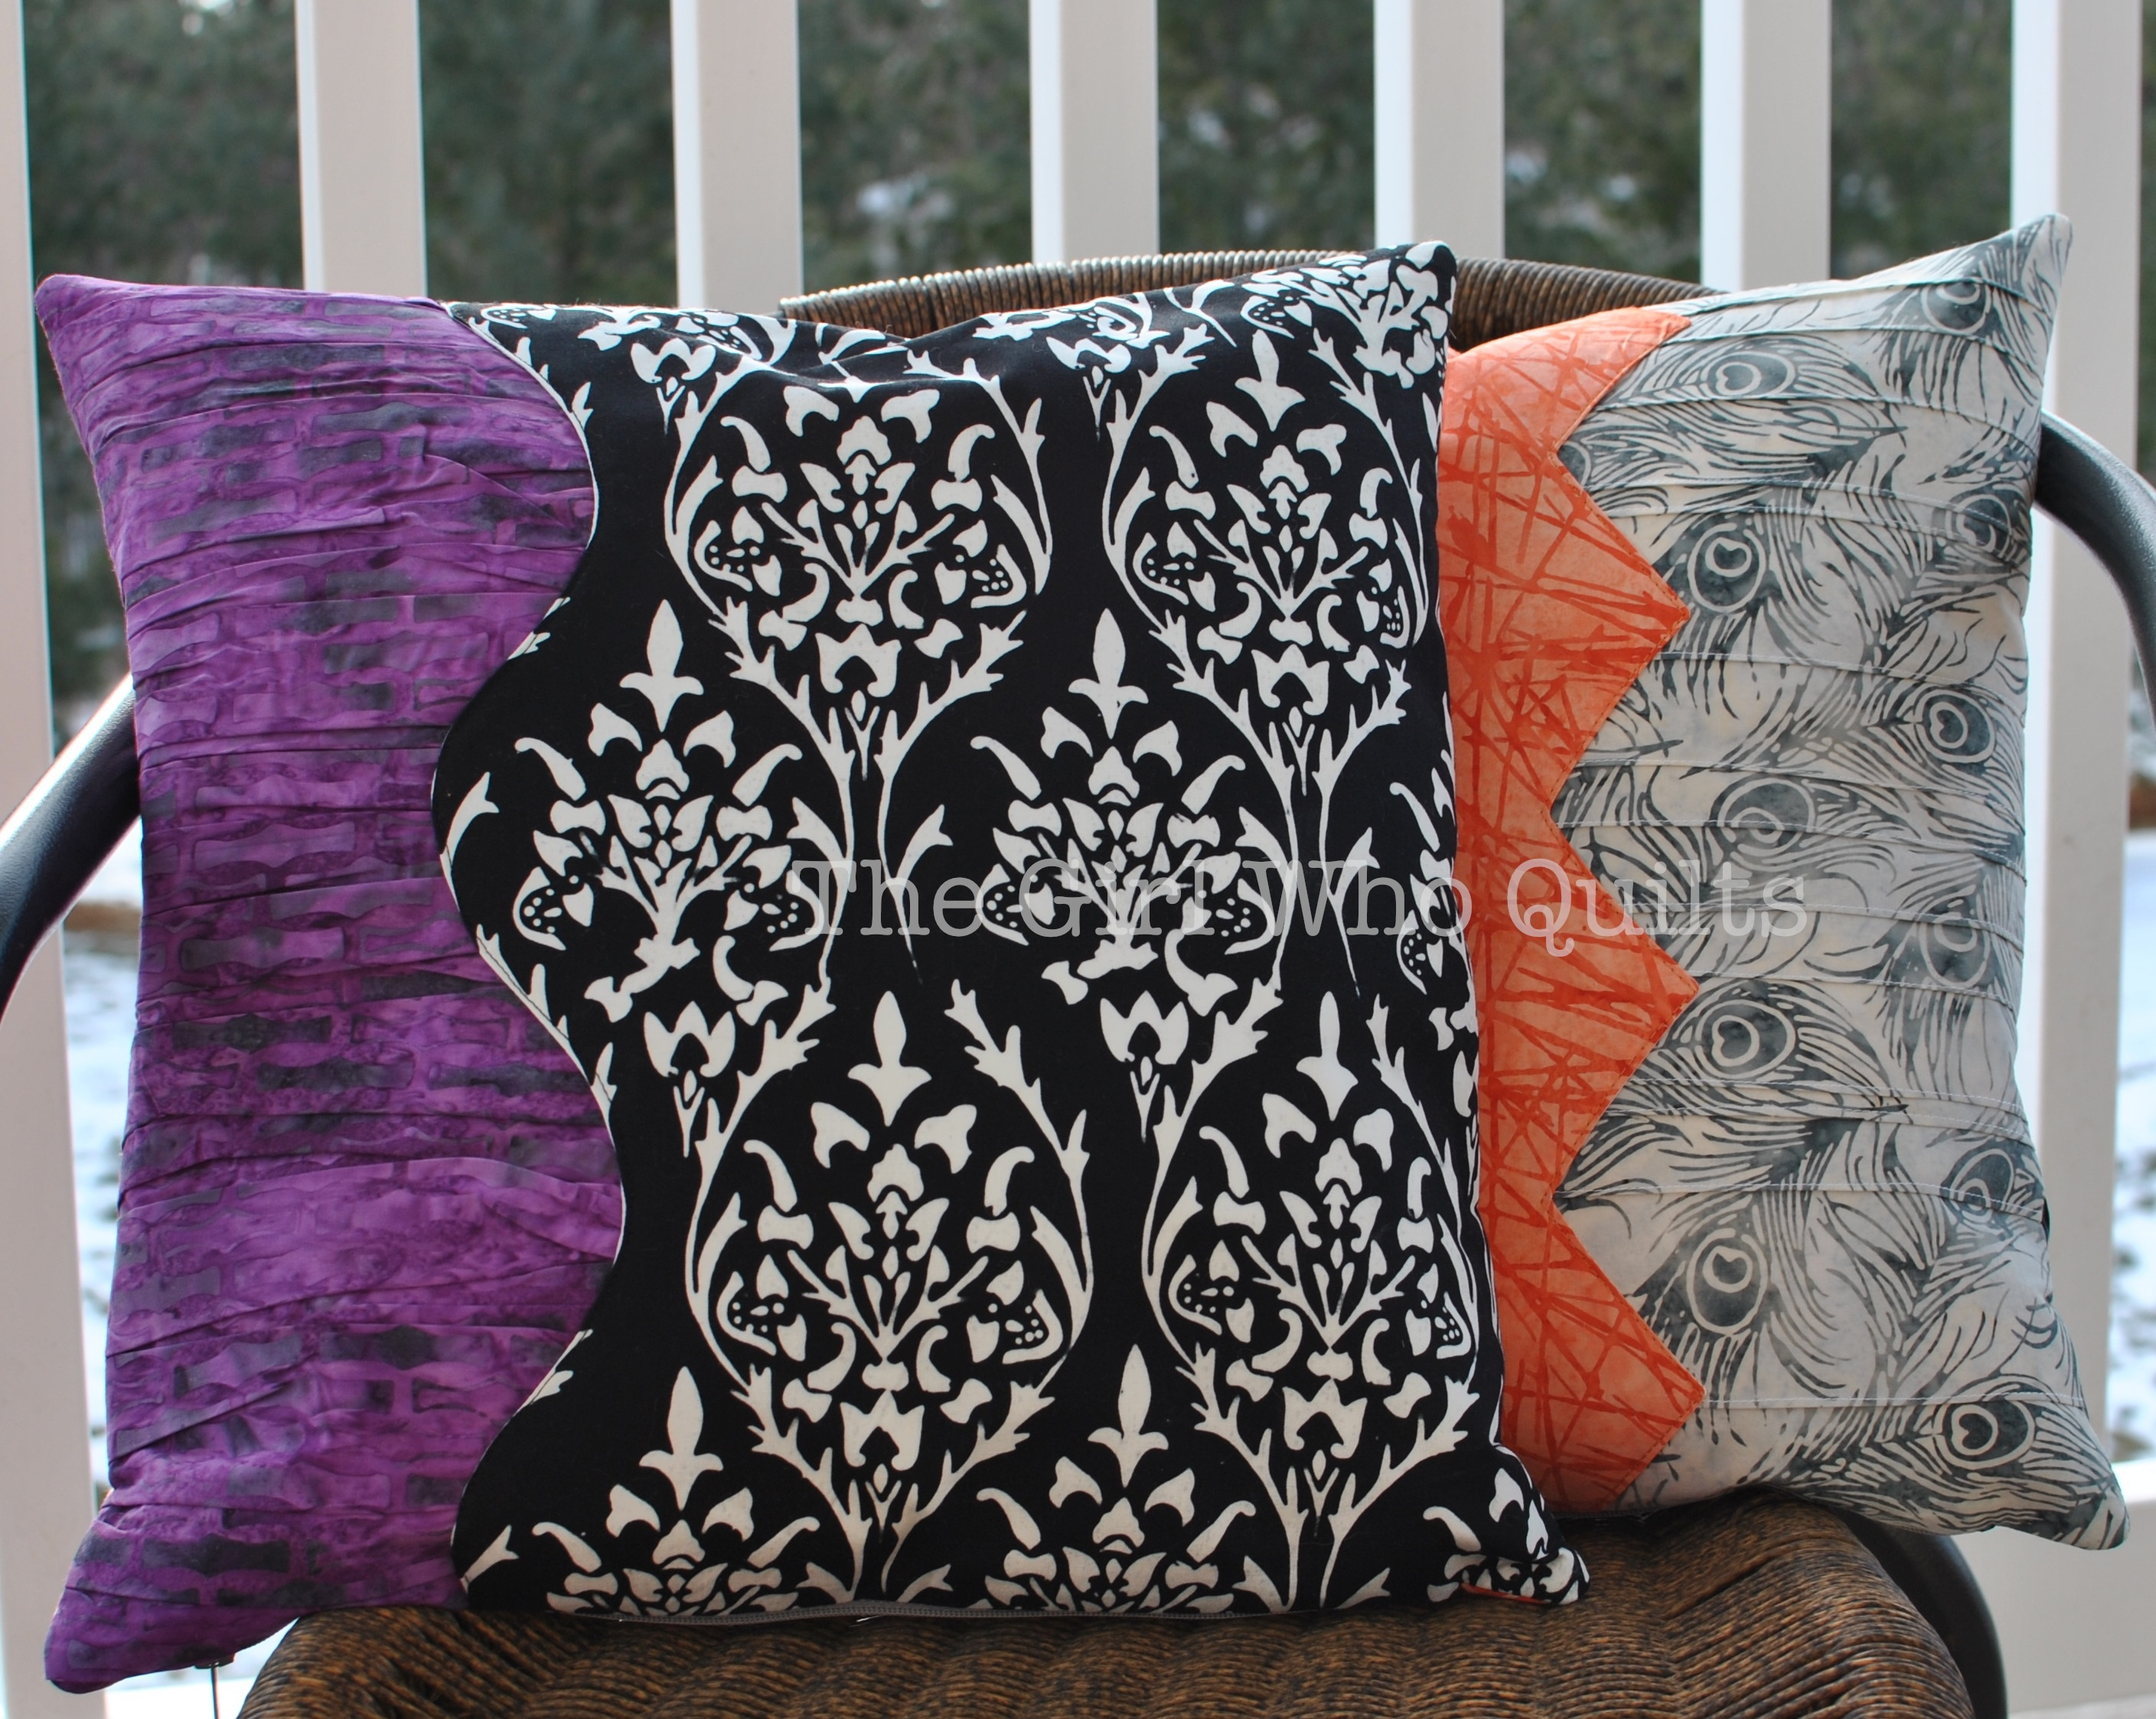 Batik Gathering Place Pillows